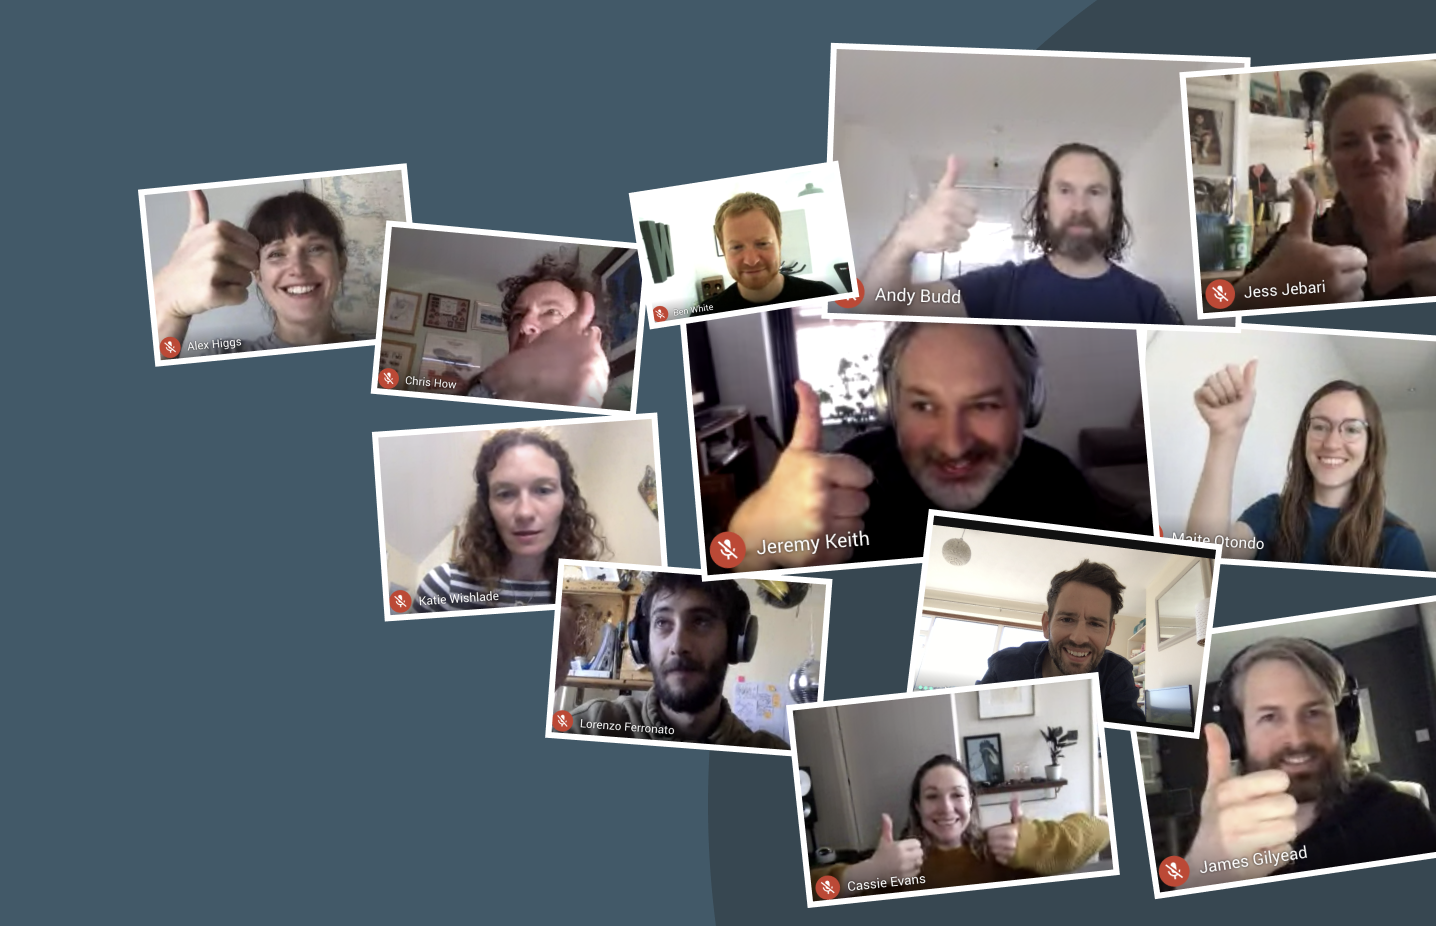 A montage of some of the Clearleft team from a Zoom call